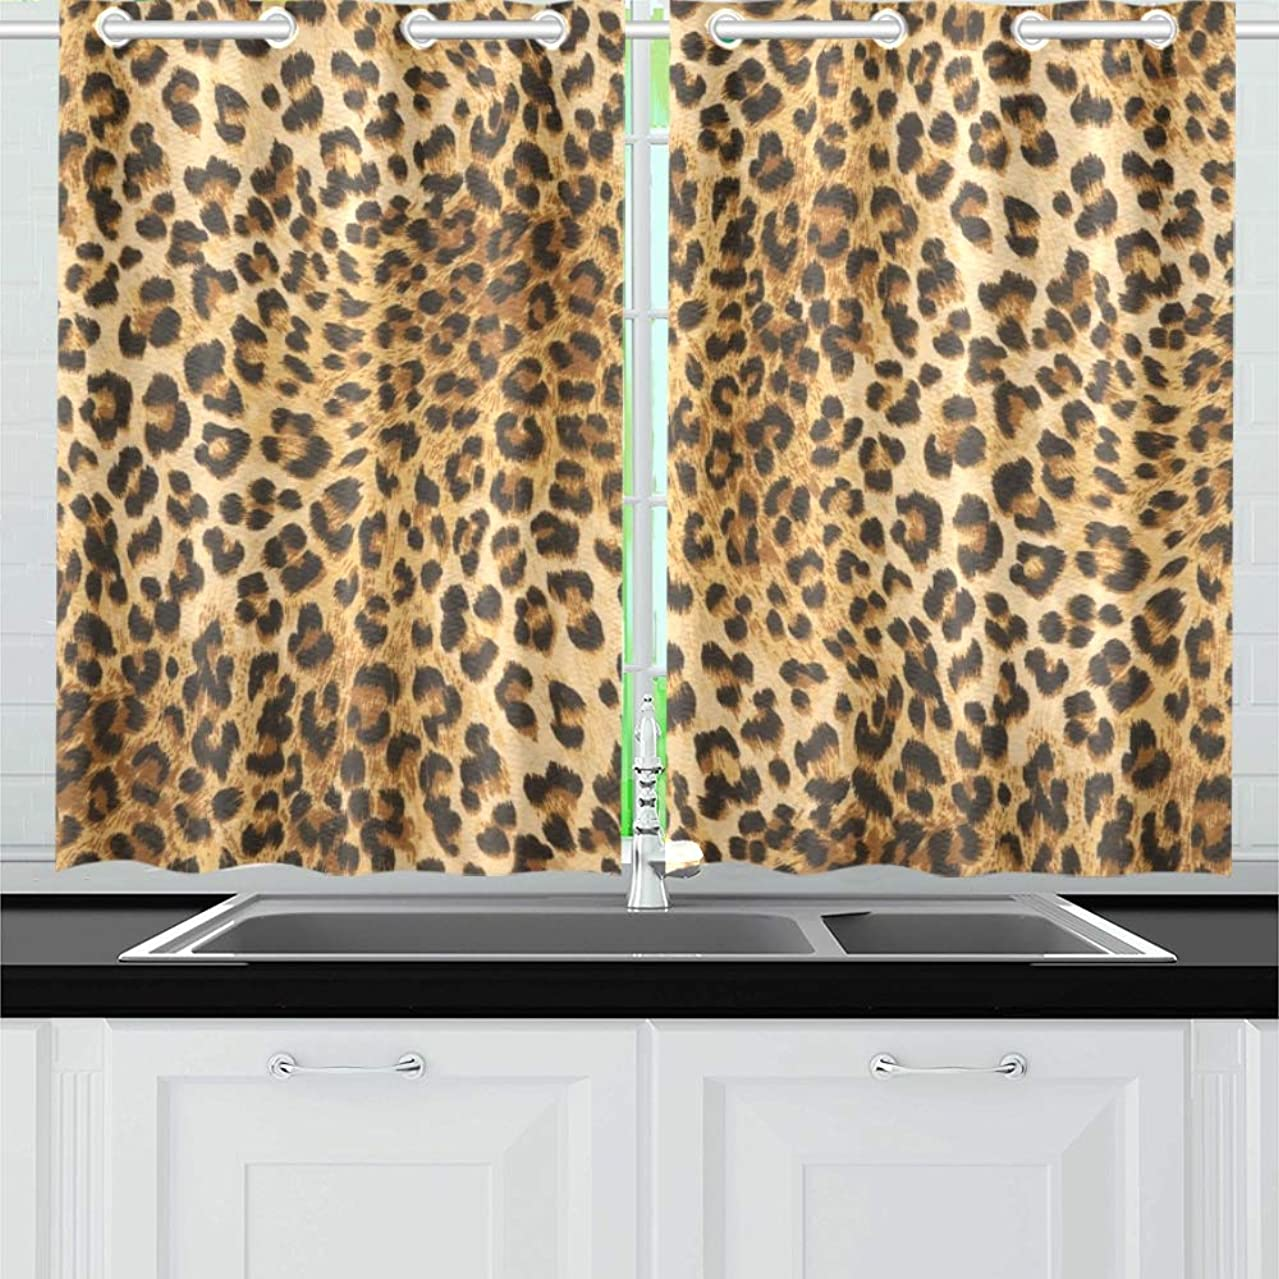 AIKENING Wild Animal Texture Kitchen Curtains Window Curtain Tiers for Café, Bath, Laundry, Living Room Bedroom 26 X 39 Inch 2 Pieces